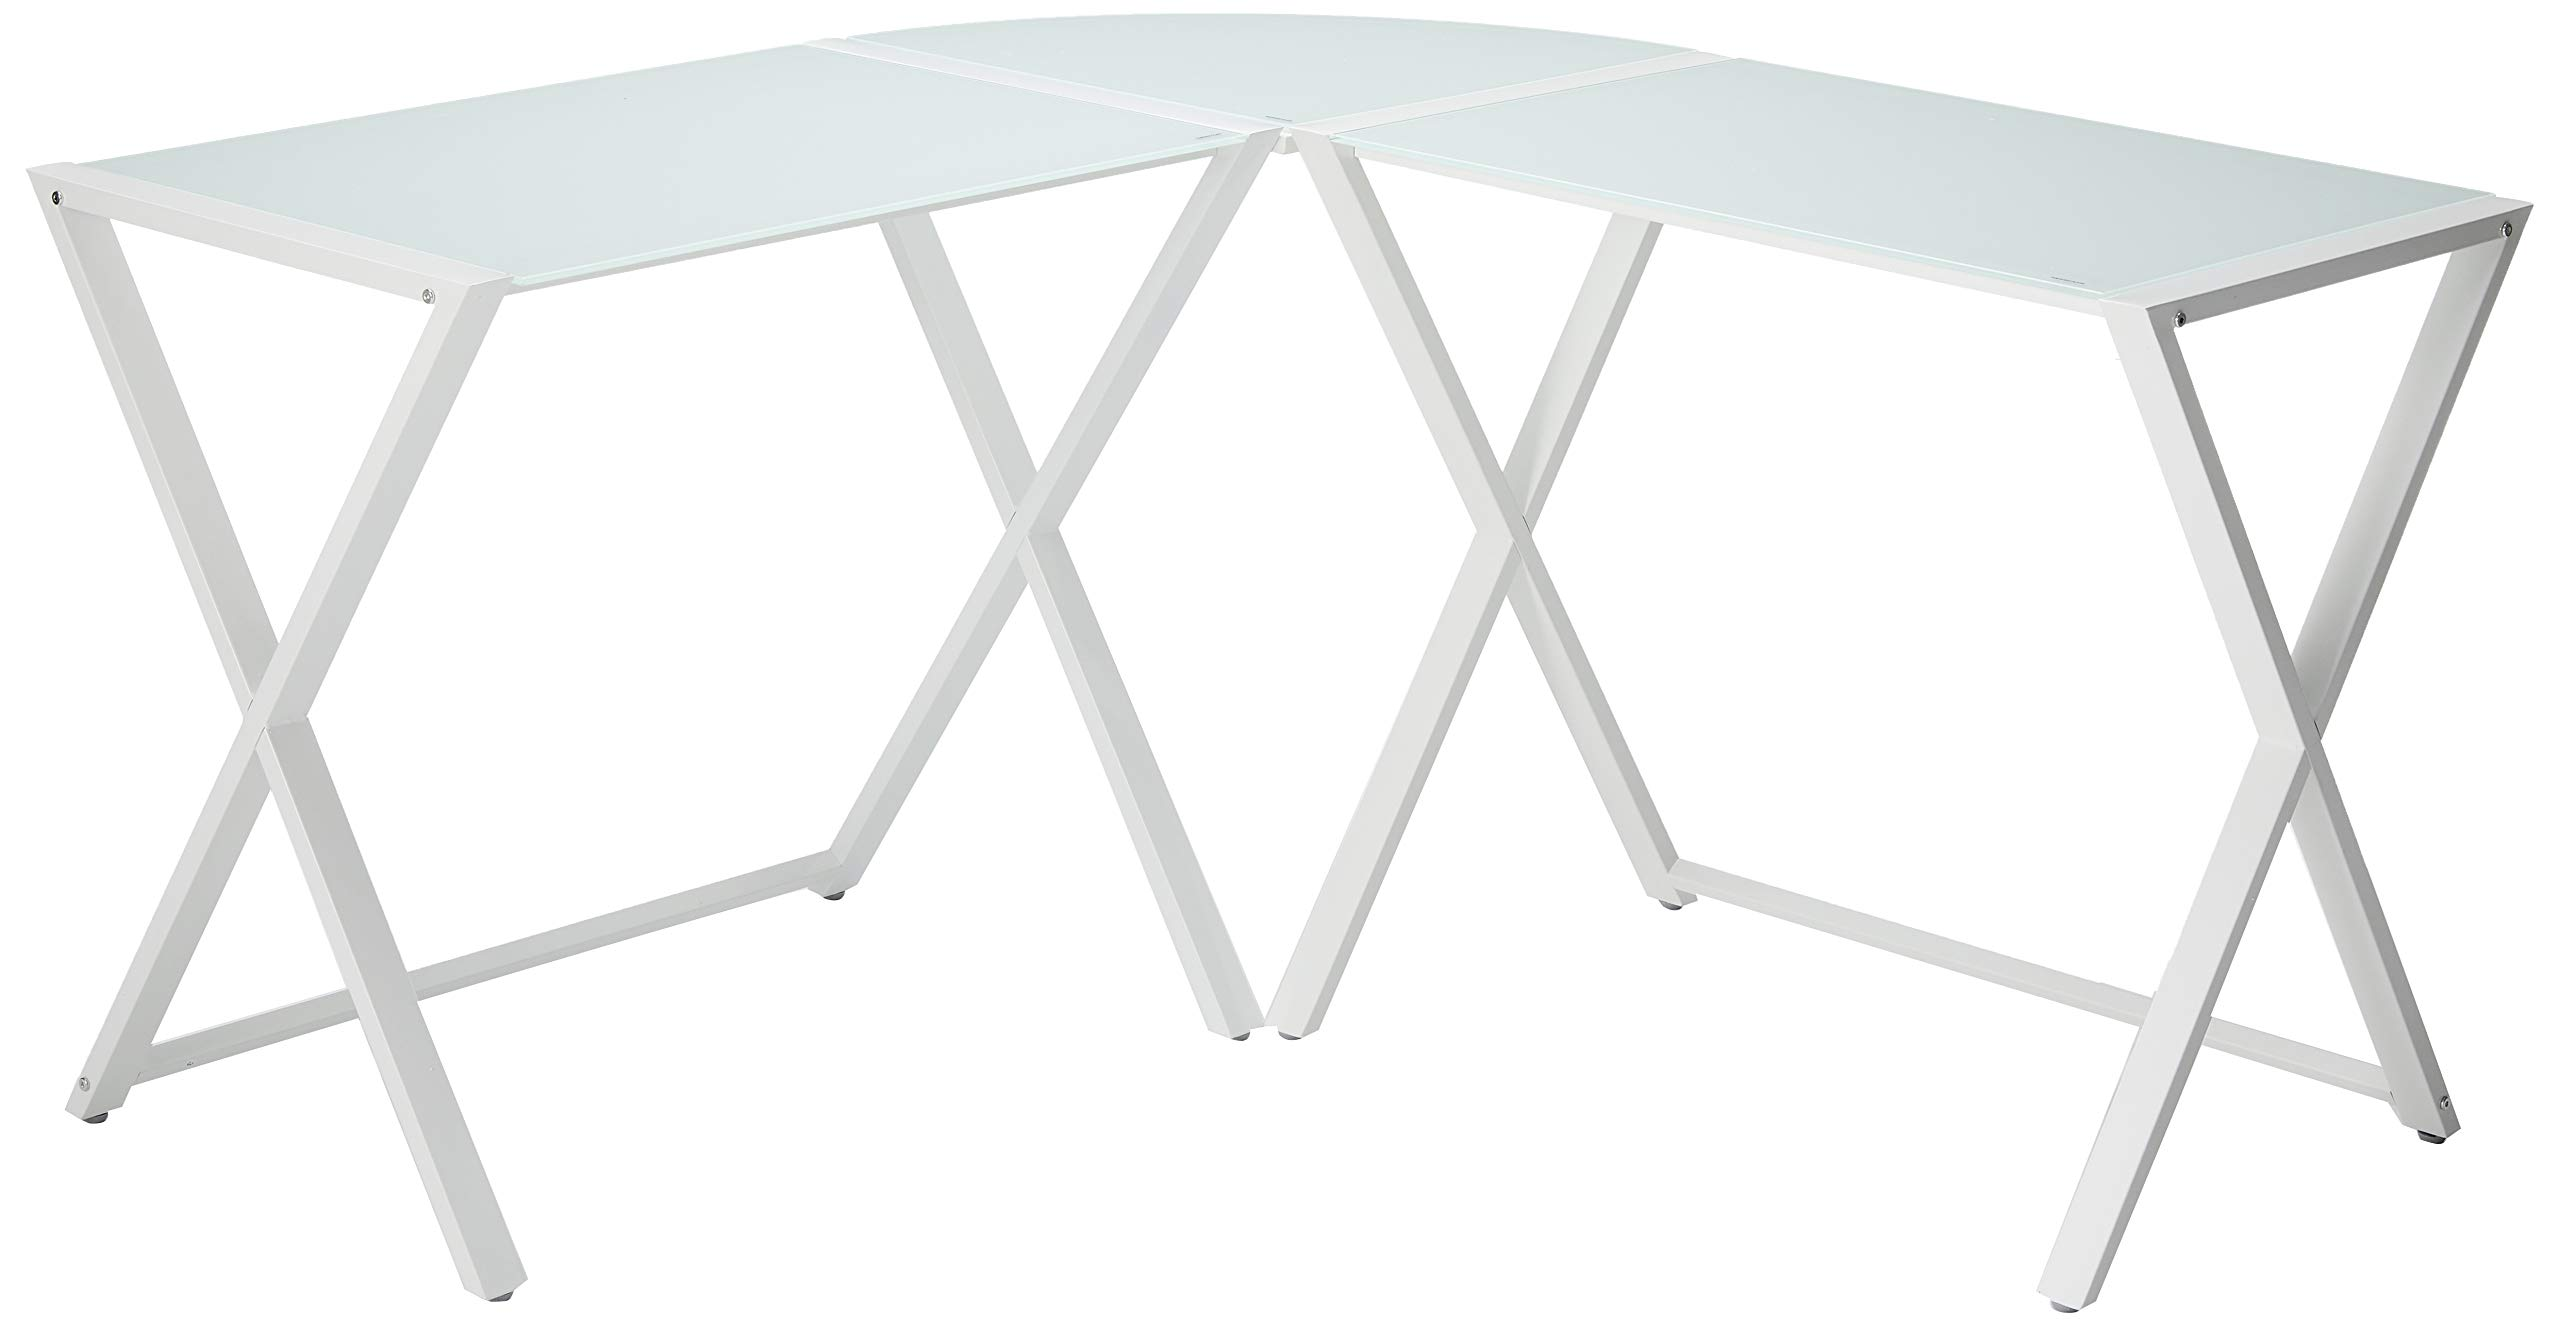 WE Furniture White Soreno Glass L Shaped Corner Computer Desk for Home Office Gaming Writing Desk Workstation Laptop Table by WE Furniture